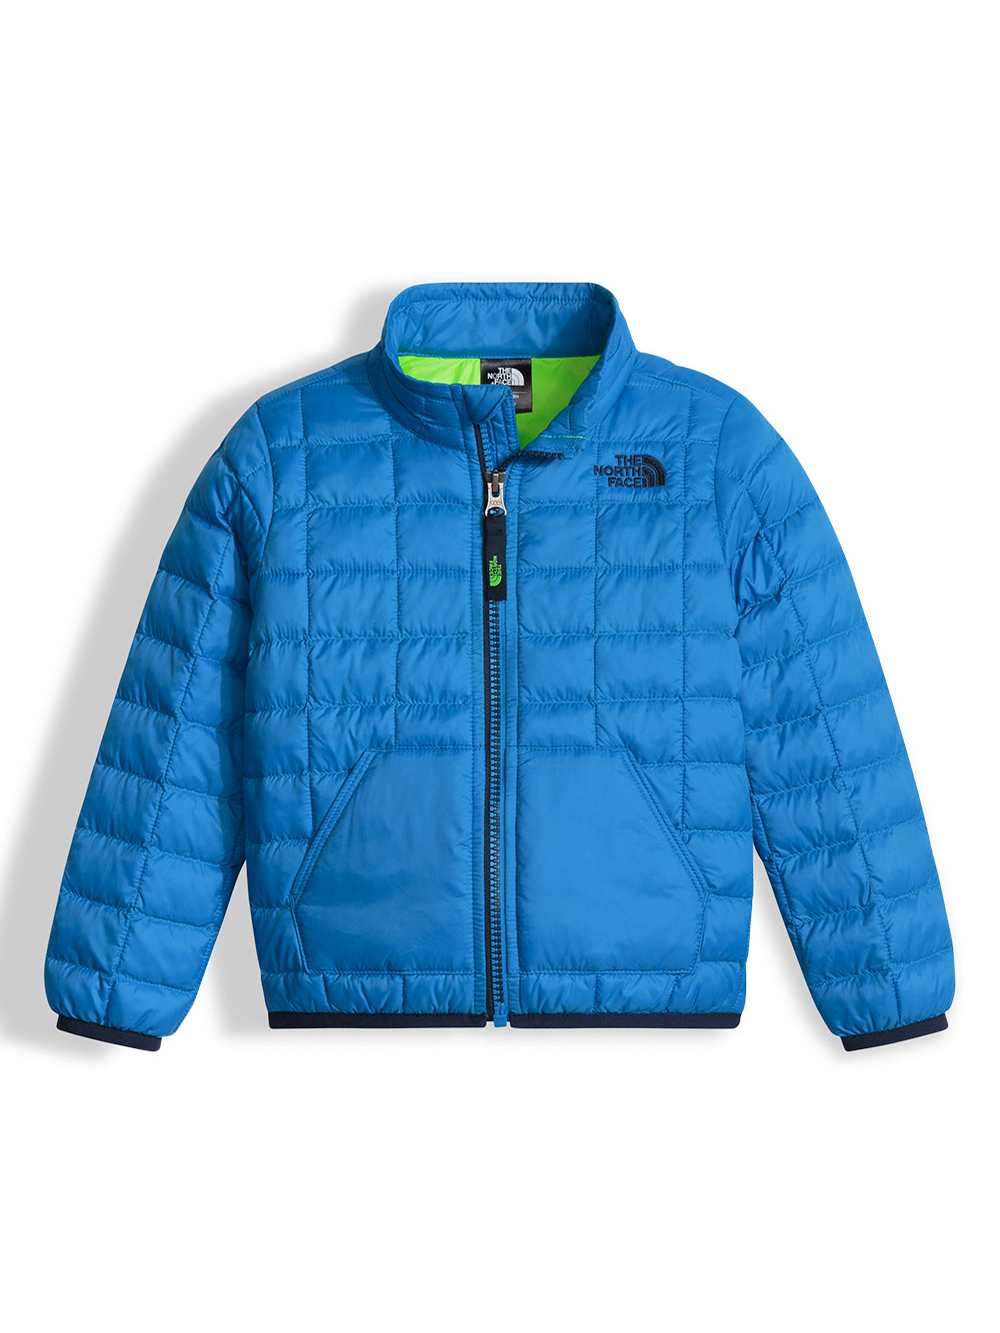 The North Face Little Boys' Thermoball Full Zip Jacket (Sizes 5 - 6) - clear lake blue, 5